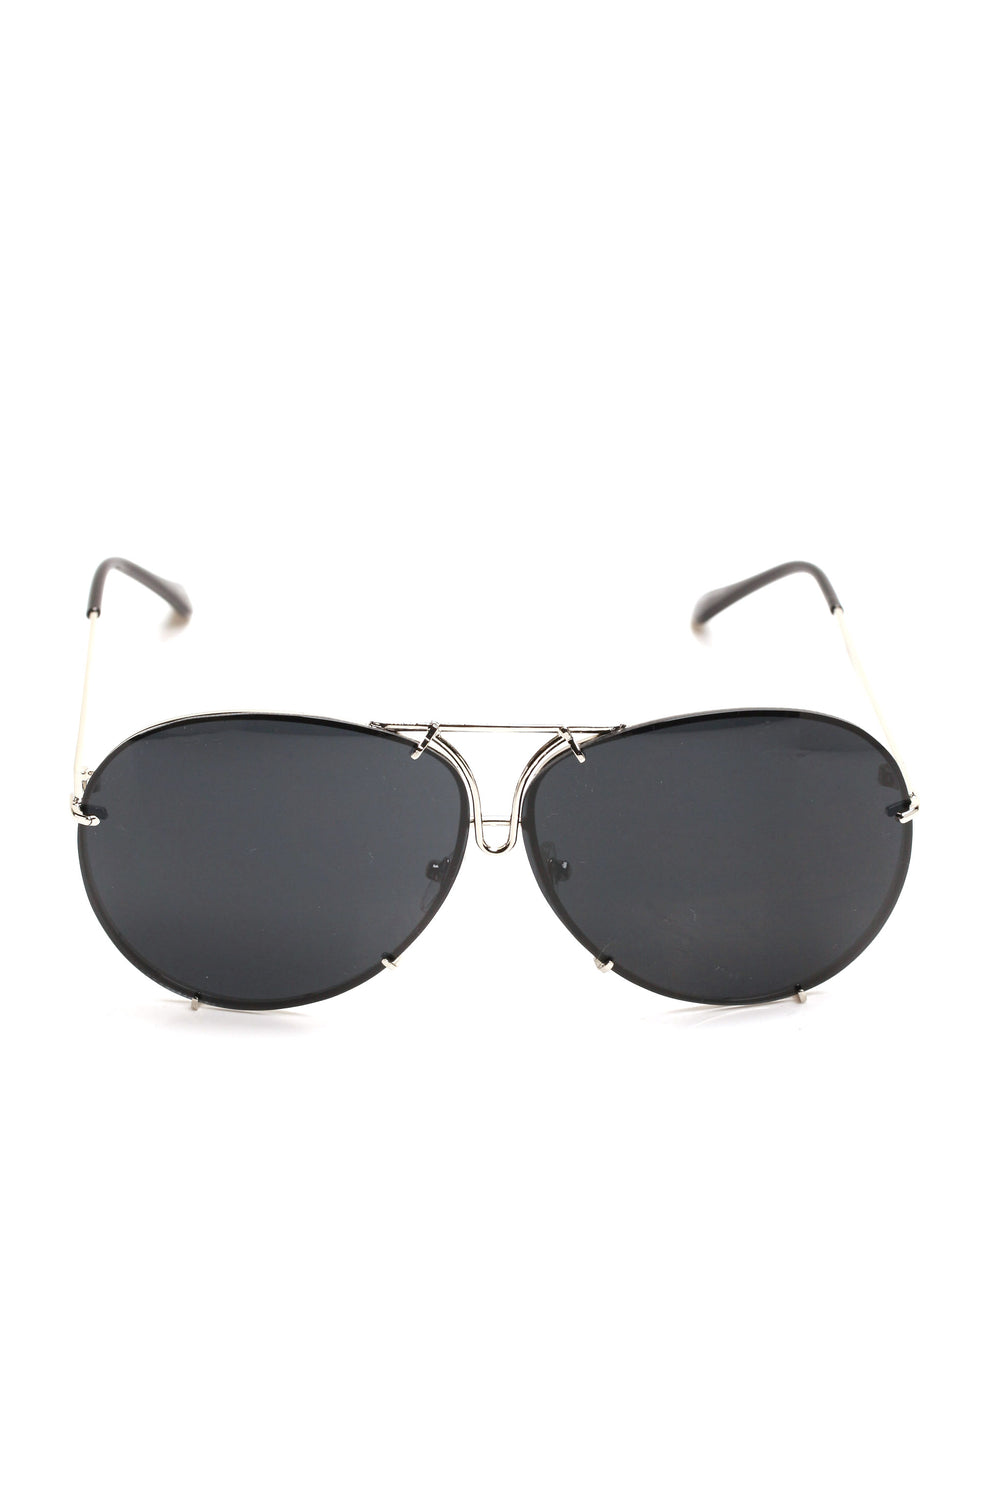 All About You Sunglasses - Silver/Black